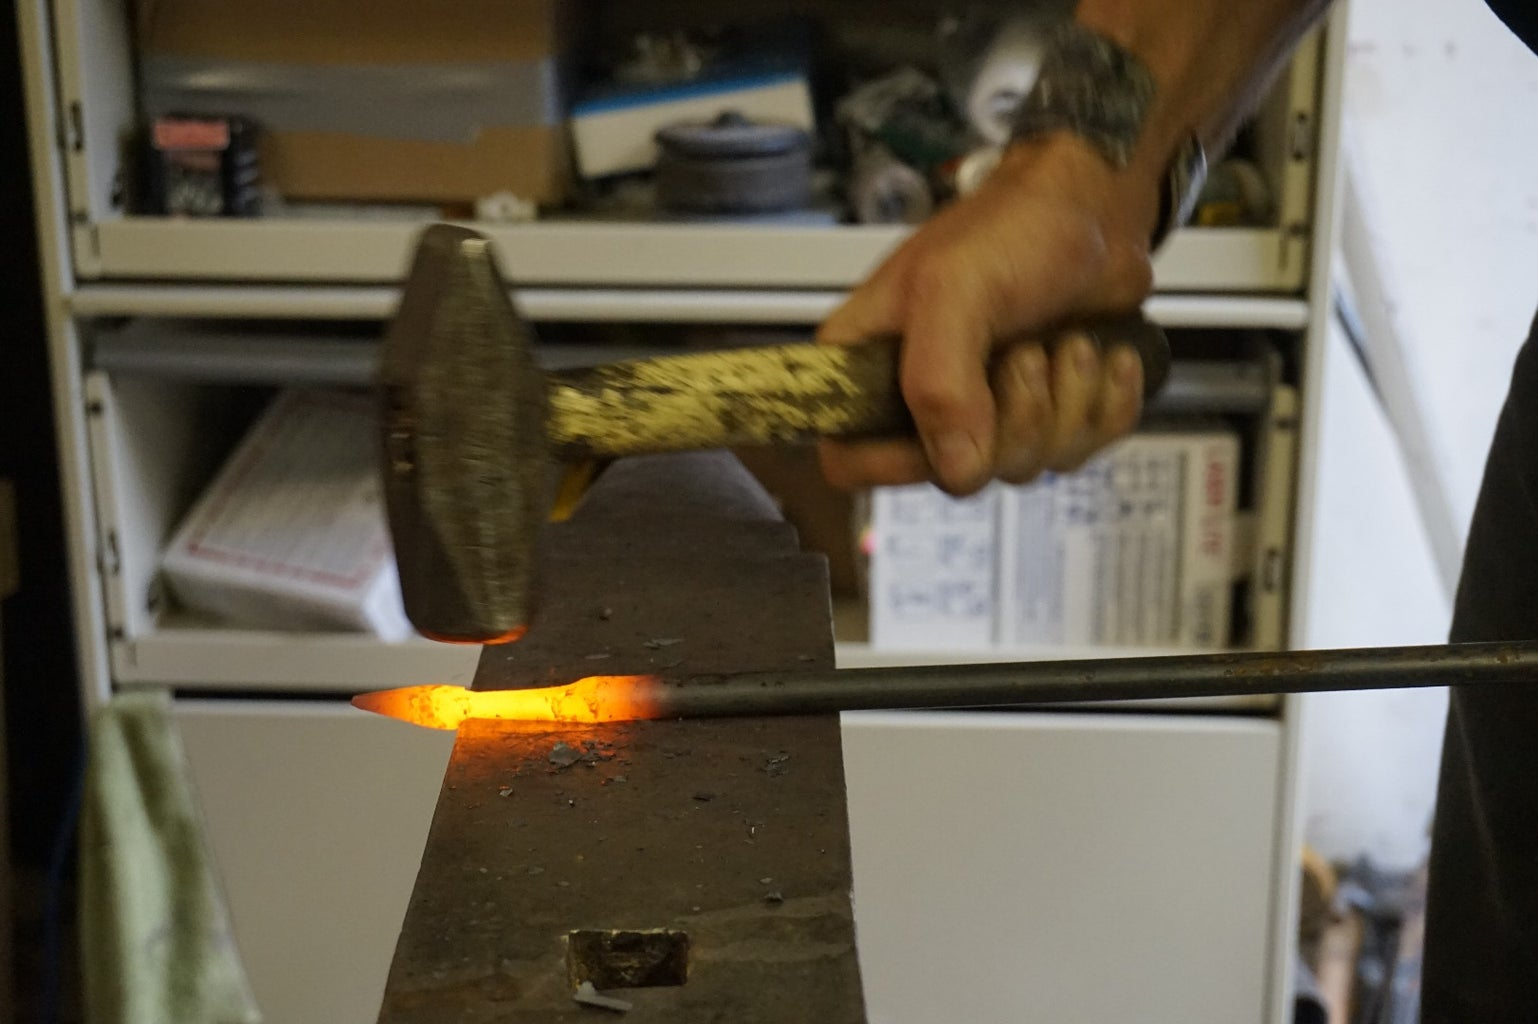 Step 3: Forge the Intersection Between Leaf and Stem